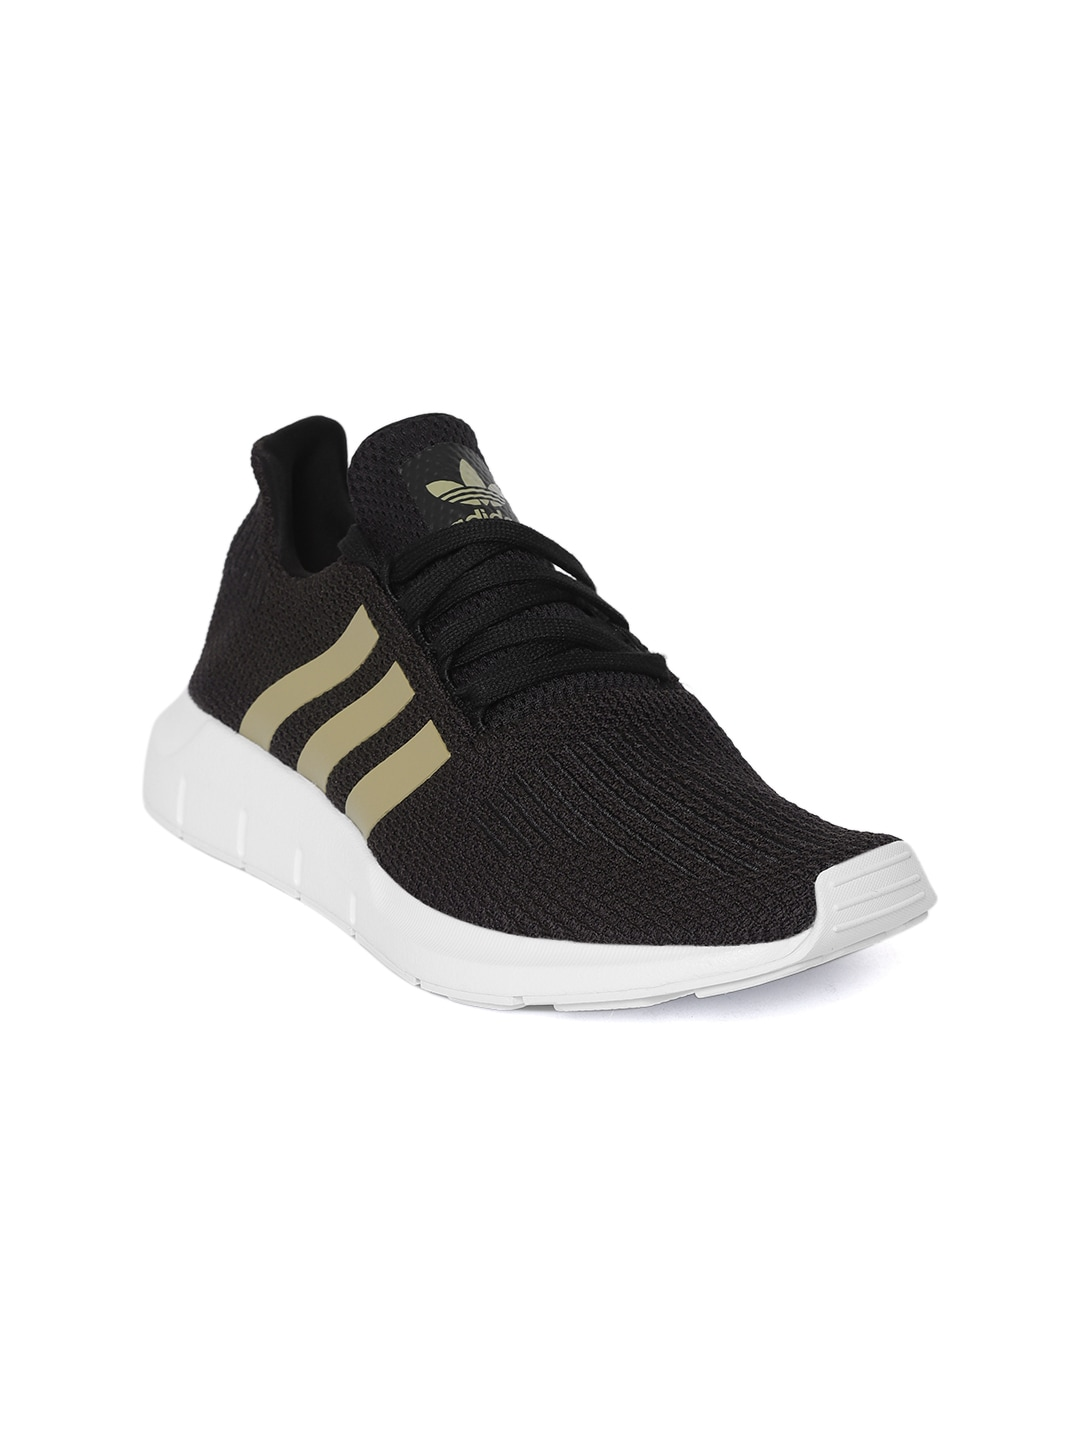 new arrival ec5c1 19acc Women s Adidas Shoes - Buy Adidas Shoes for Women Online in India